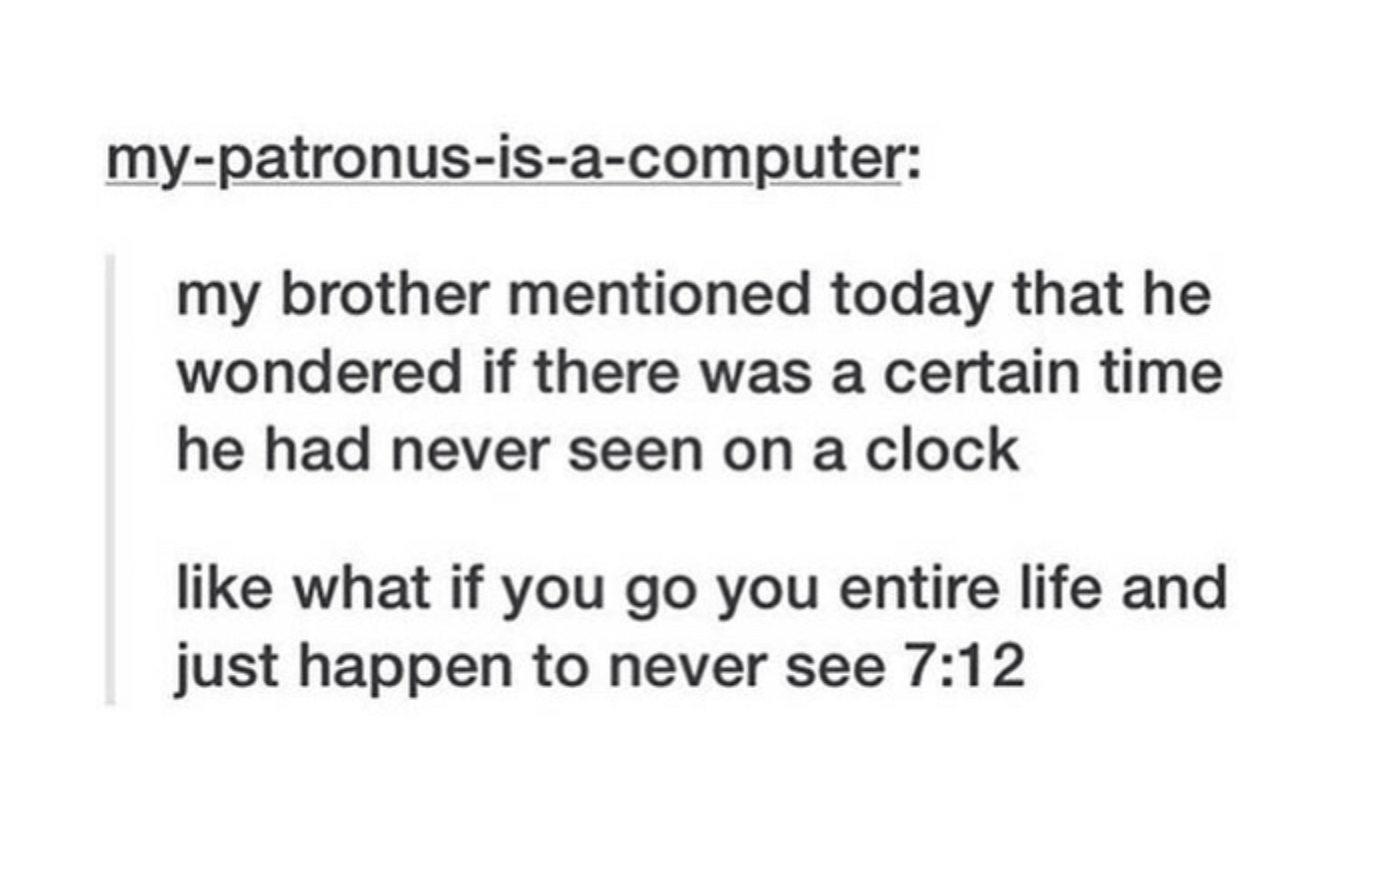 tumblr post reading my brother mentioned today that he wondered if there was a certain time he had never seen on the clock like what if you go your entire life and just happen to never see 712: